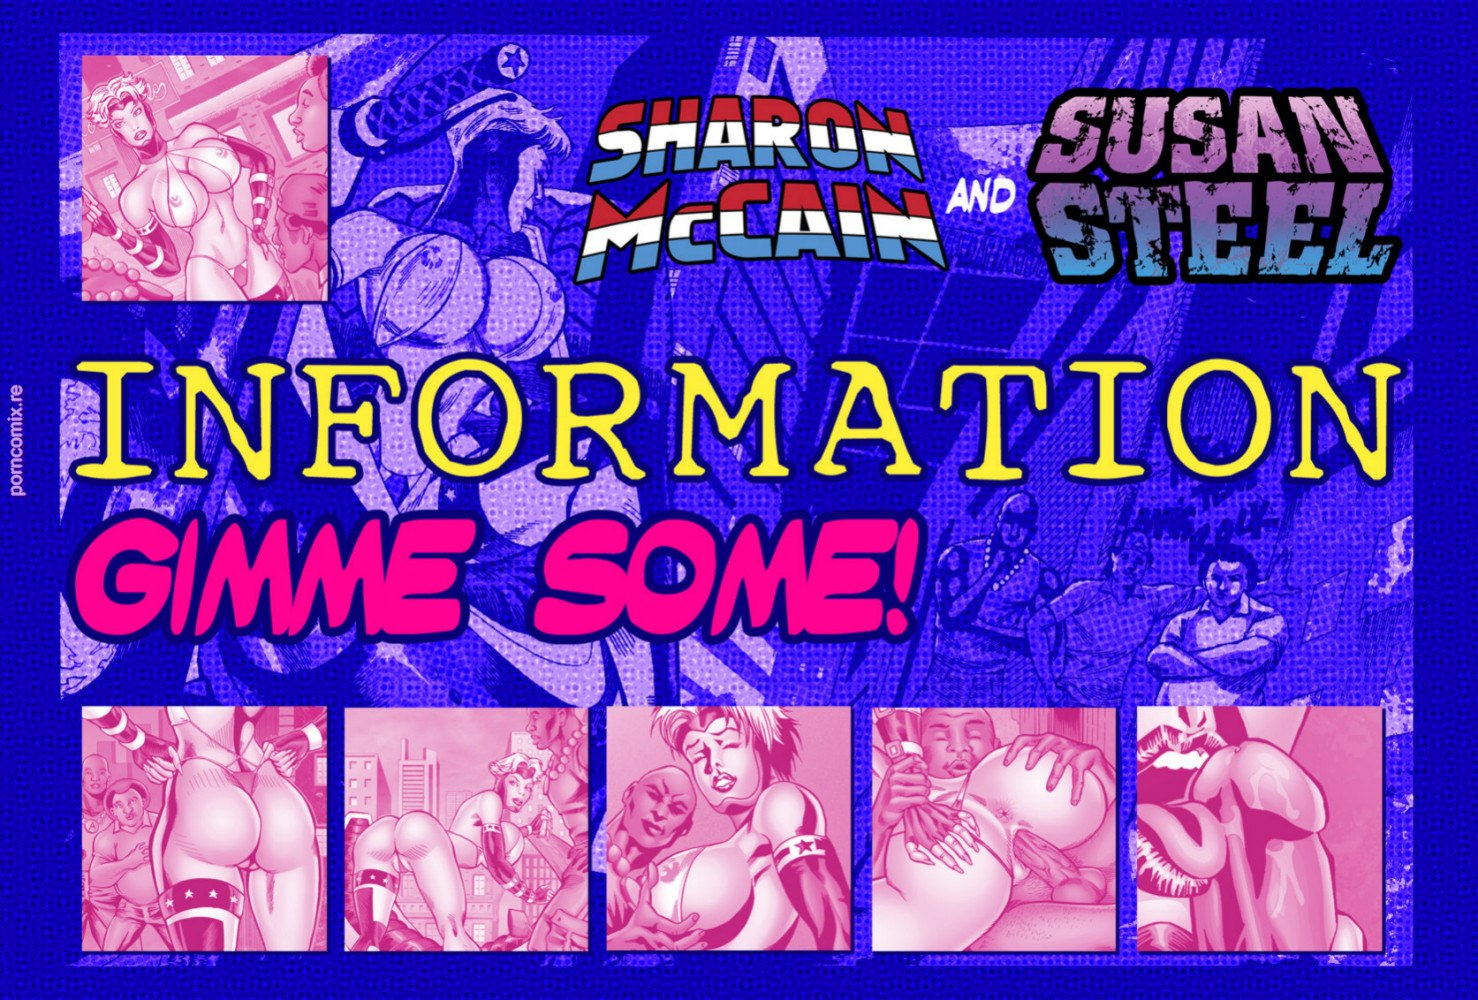 Porn Comics - Sharon MacCain in Information- Gimme Some! porn comics 8 muses